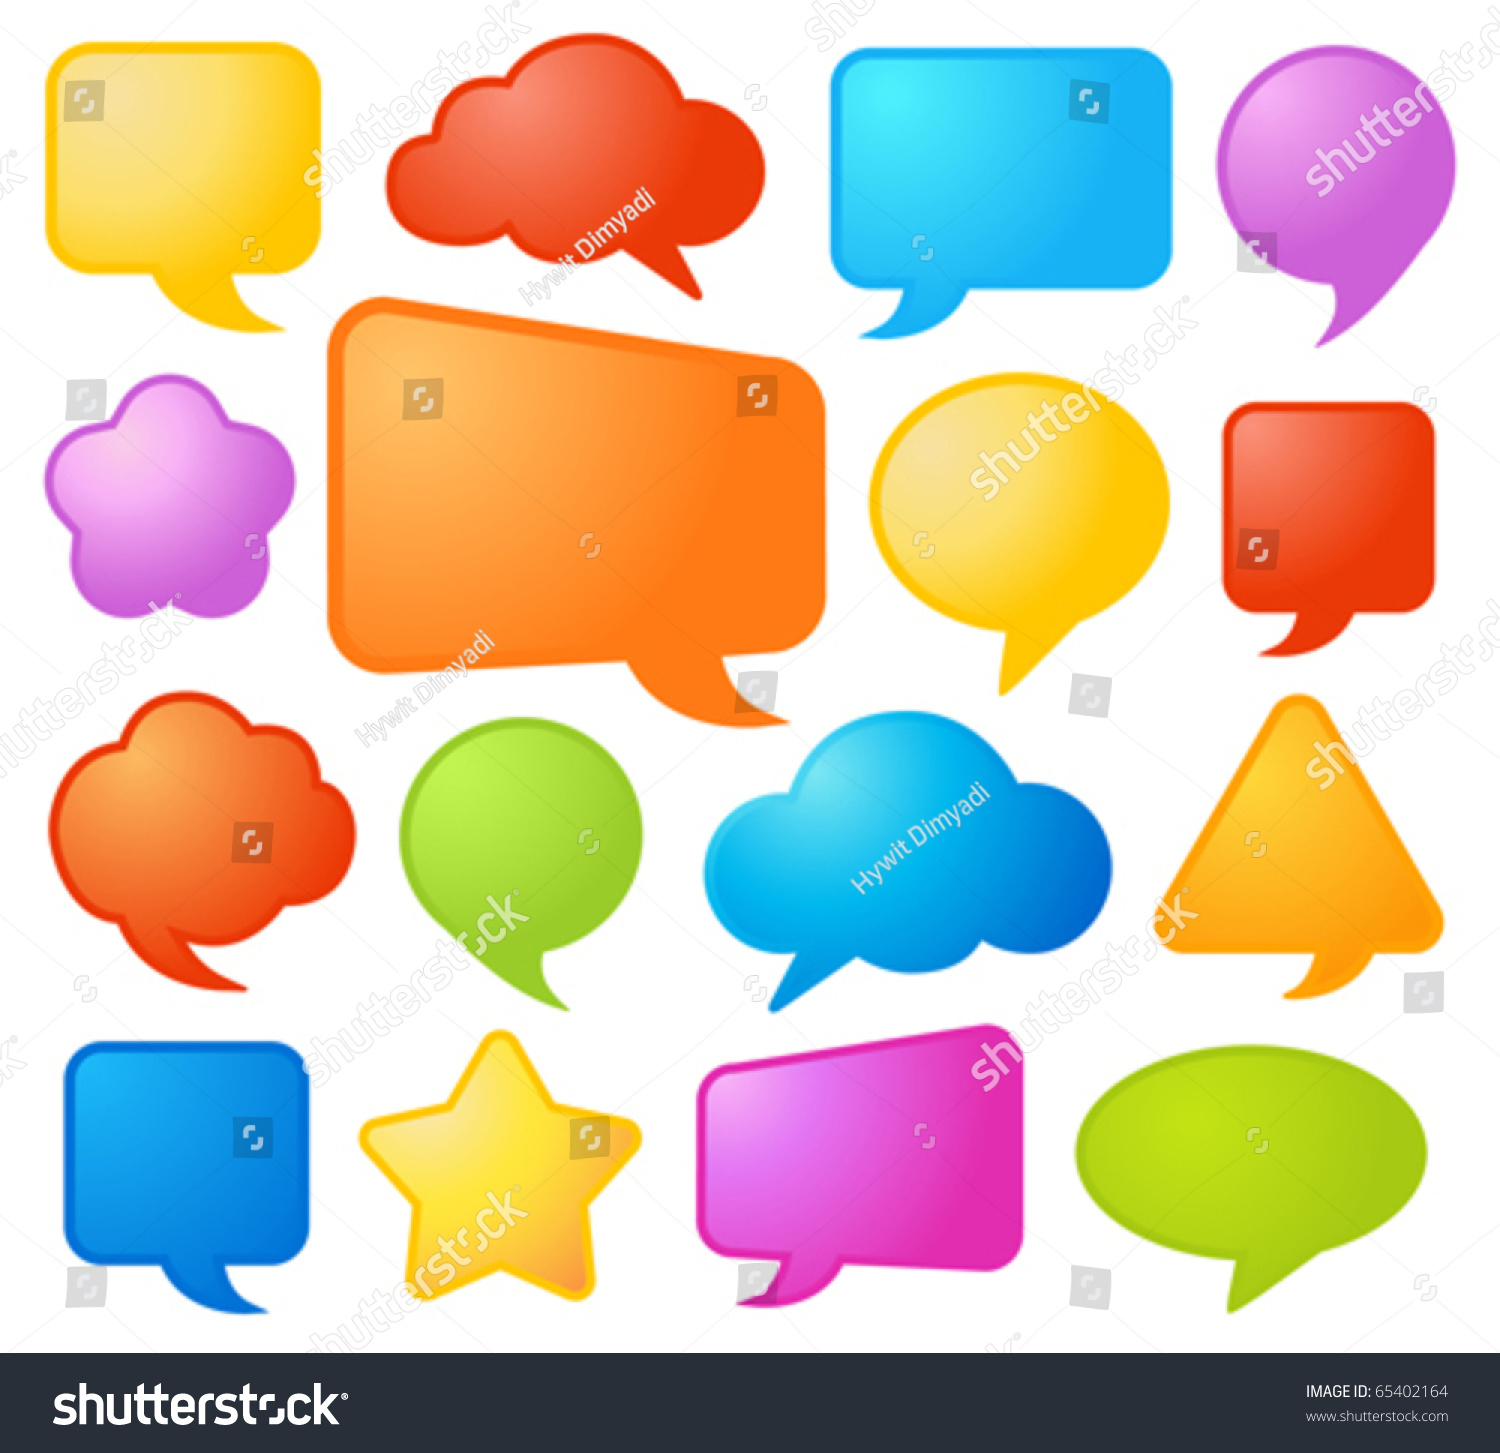 Worksheet Shapes And Colors collection of various shapes and colors comic speech bubbles in vector format 65402164 shutterstock